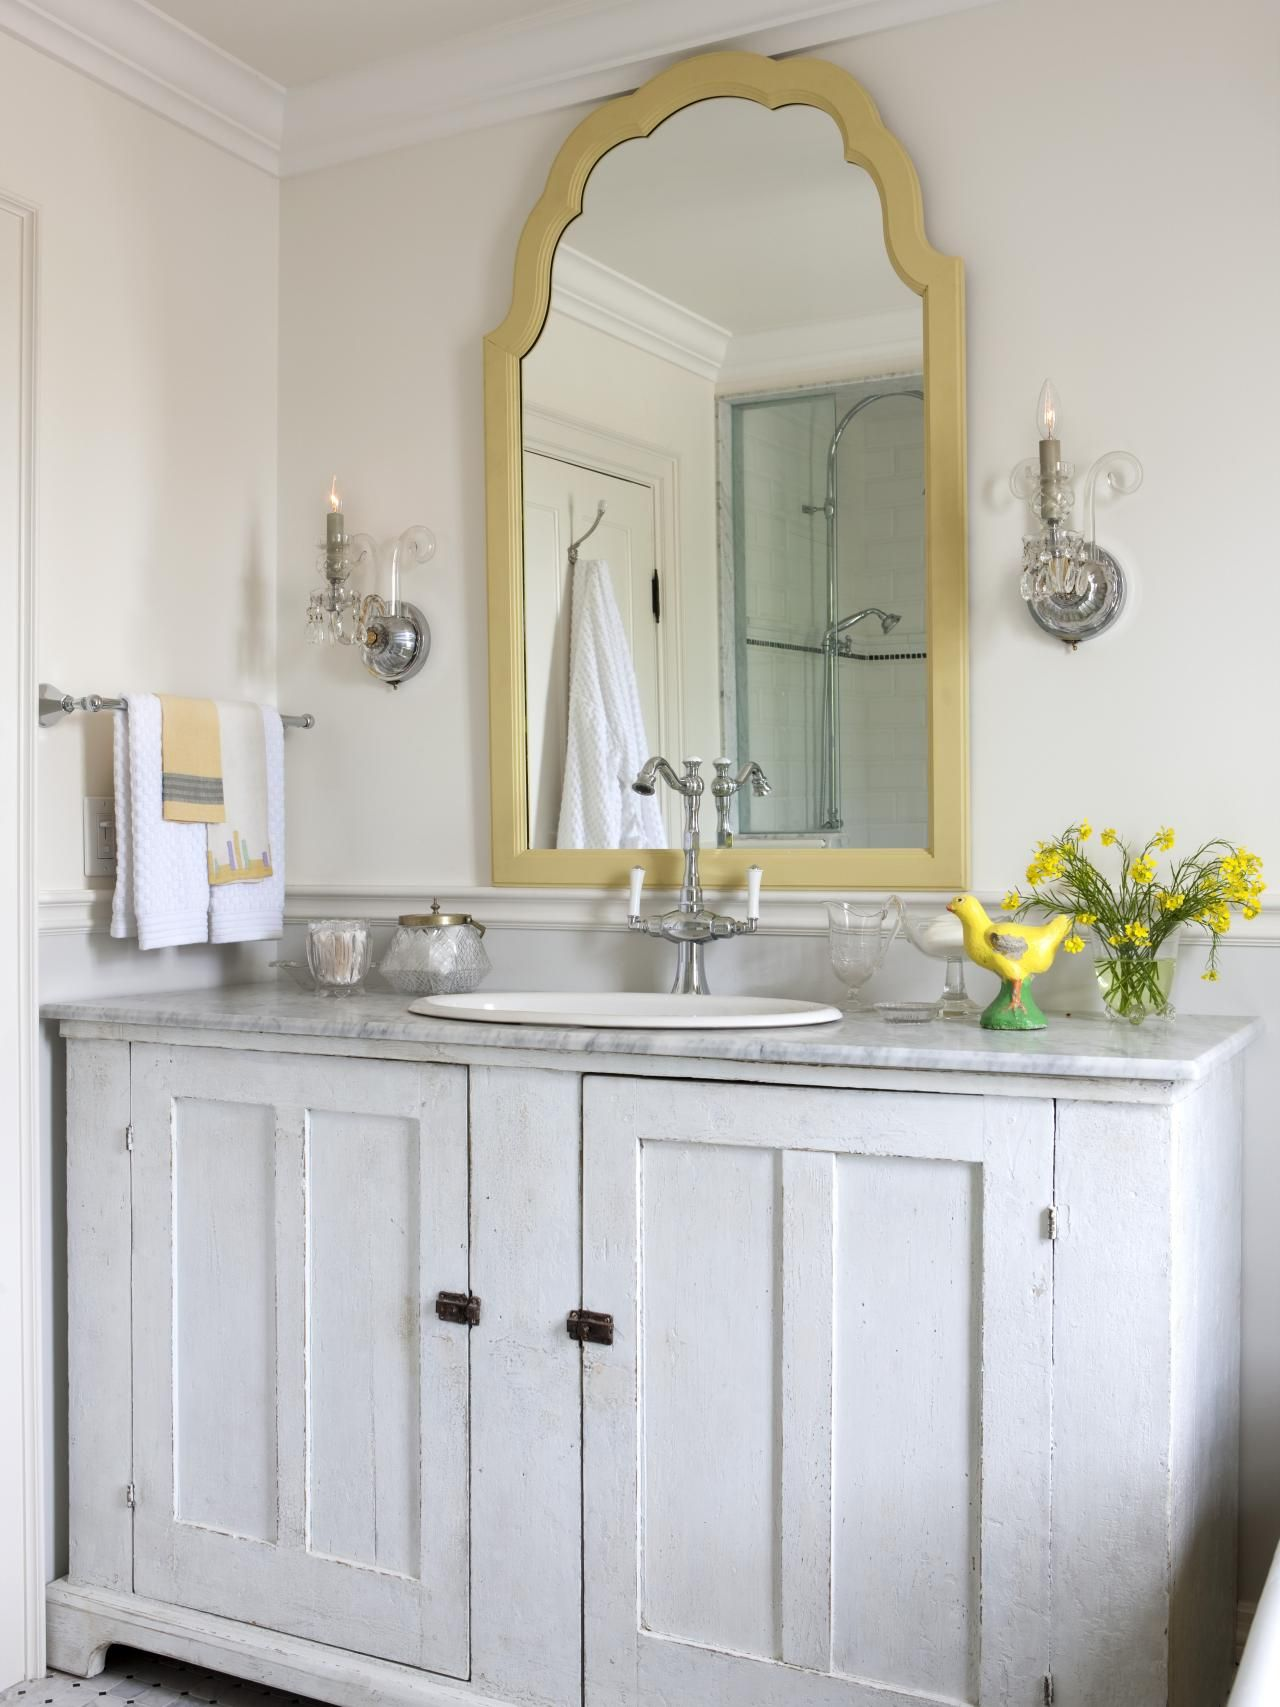 This traditional white bathroom features a gold trim mirror chrome